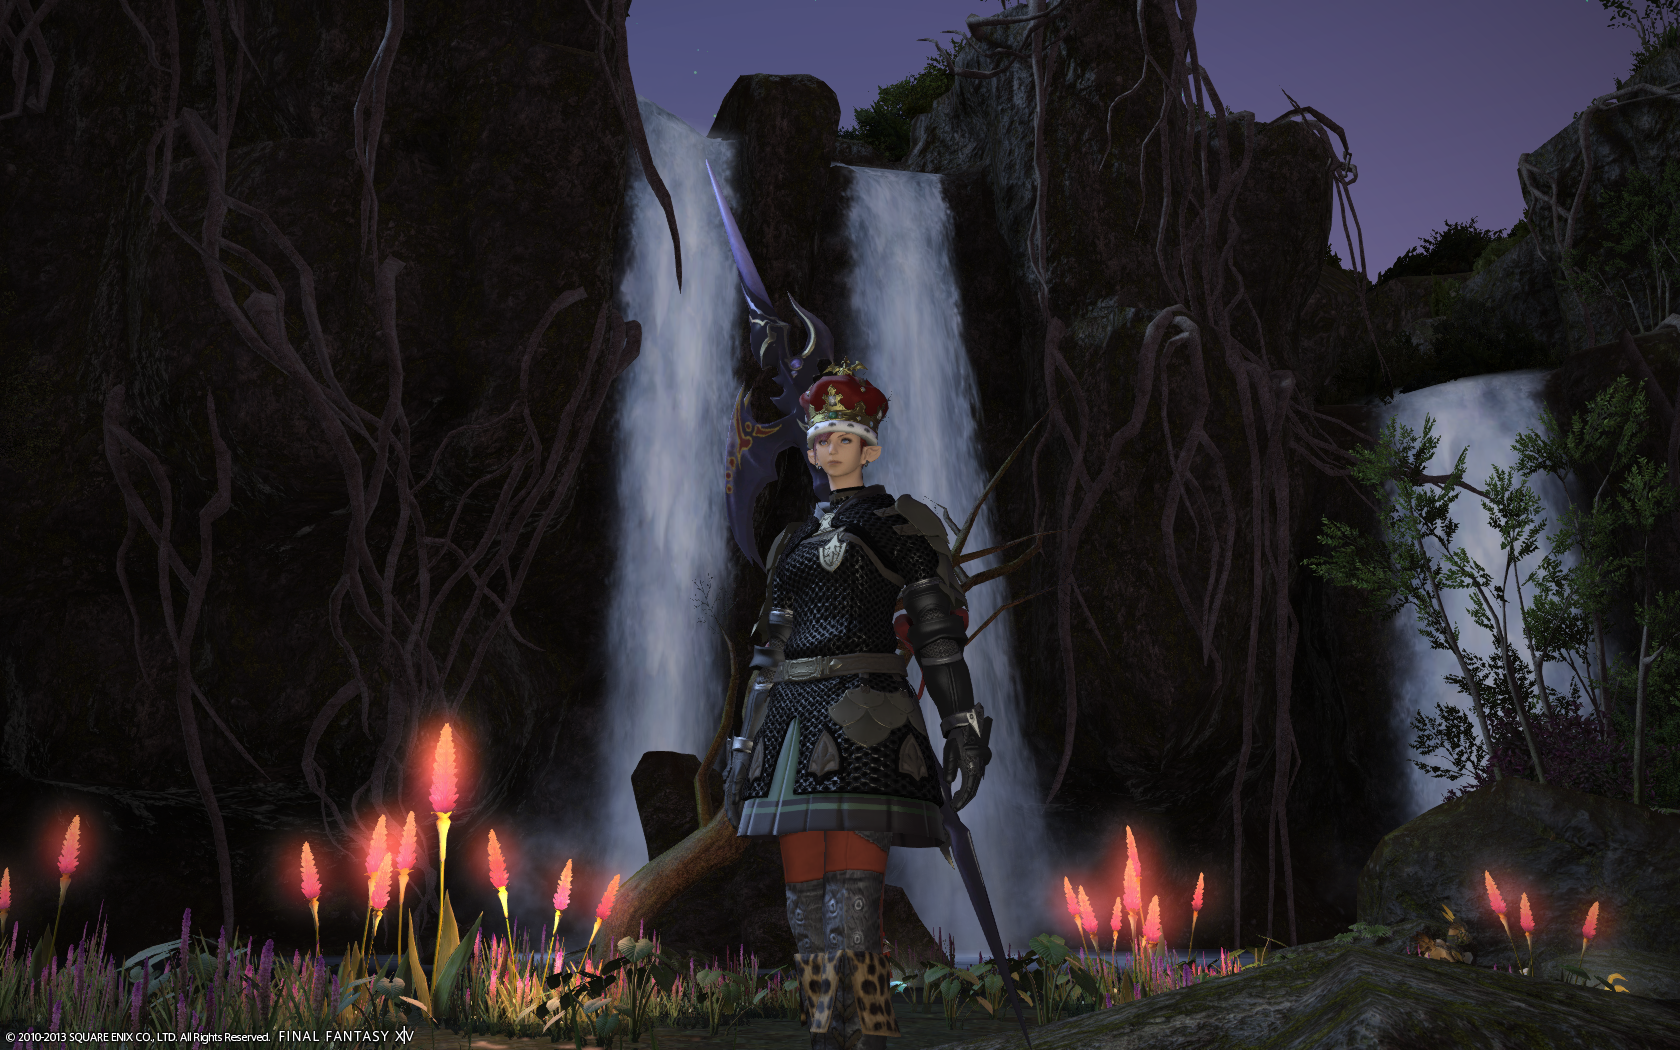 cichy ffxiv scaling them hurts down bucket size file need bigger 1920 stupid reborn screenshot thread realm fantasy 1017 somewhat less with release final